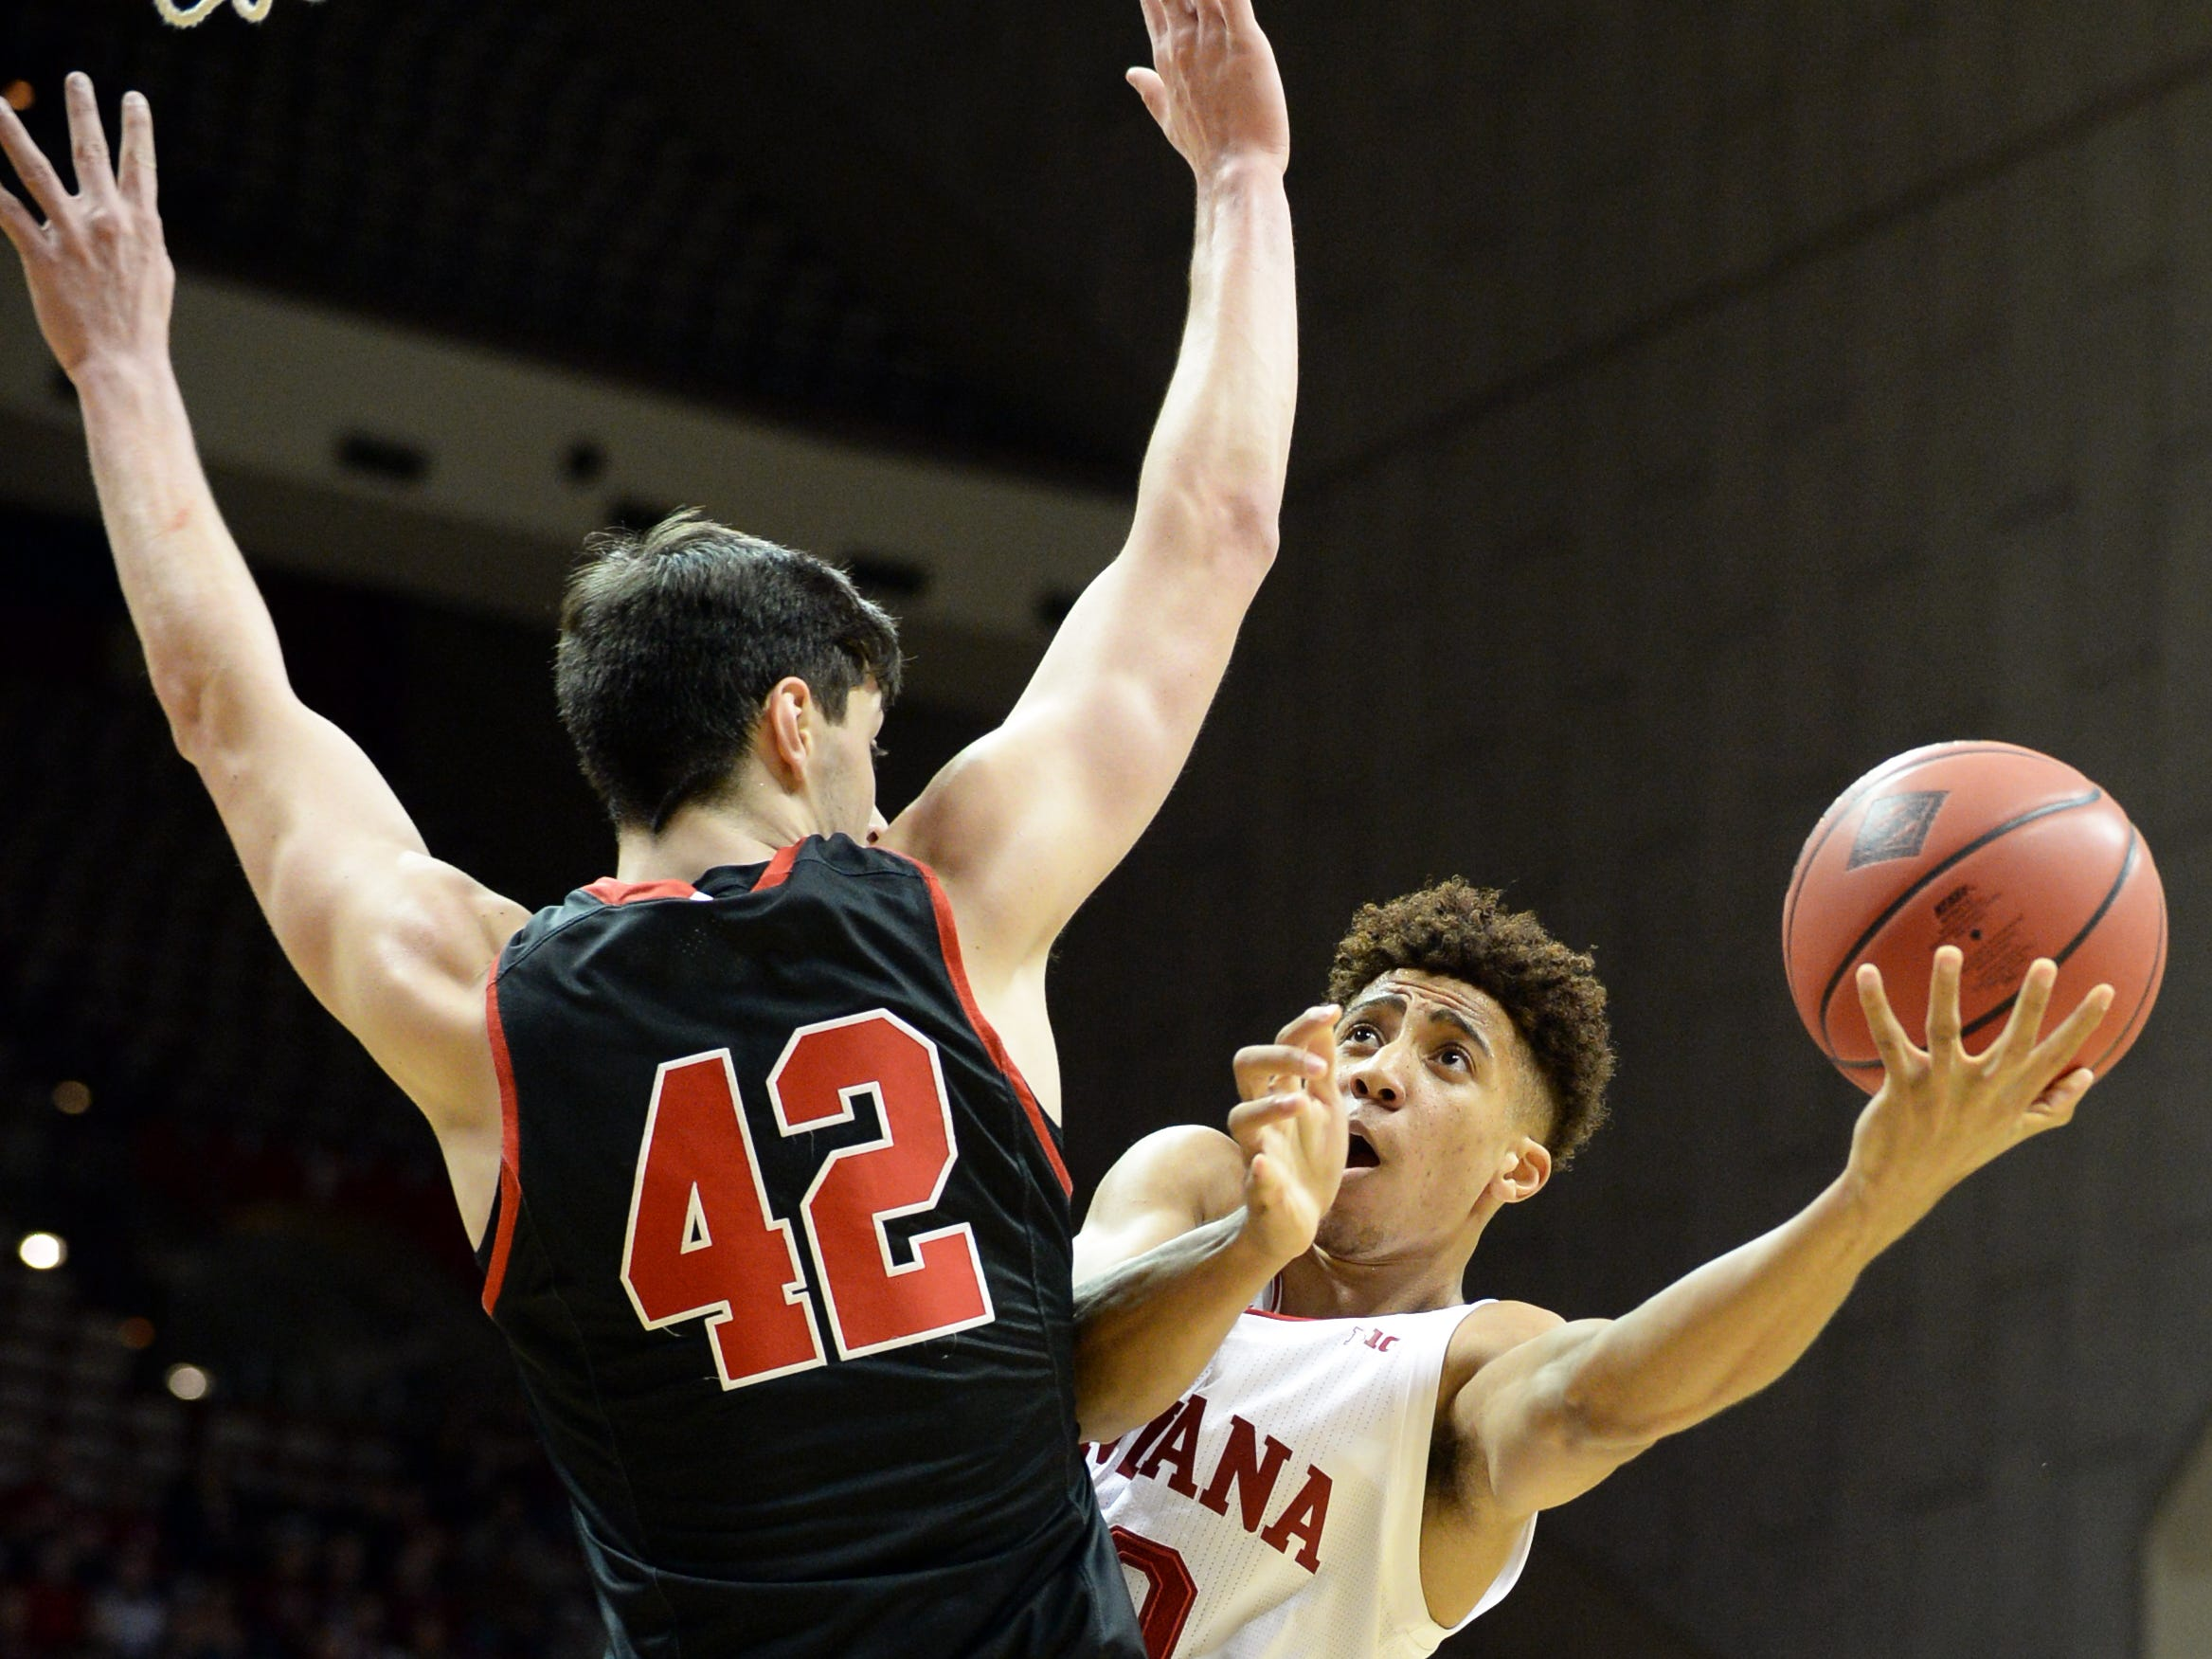 Indiana Hoosiers guard Rob Phinisee (10) drives to the basket during the game against St. Francis (Pa.) at Simon Skjodt Assembly Hall in Bloomington Ind., on Tuesday, March 19, 2019.